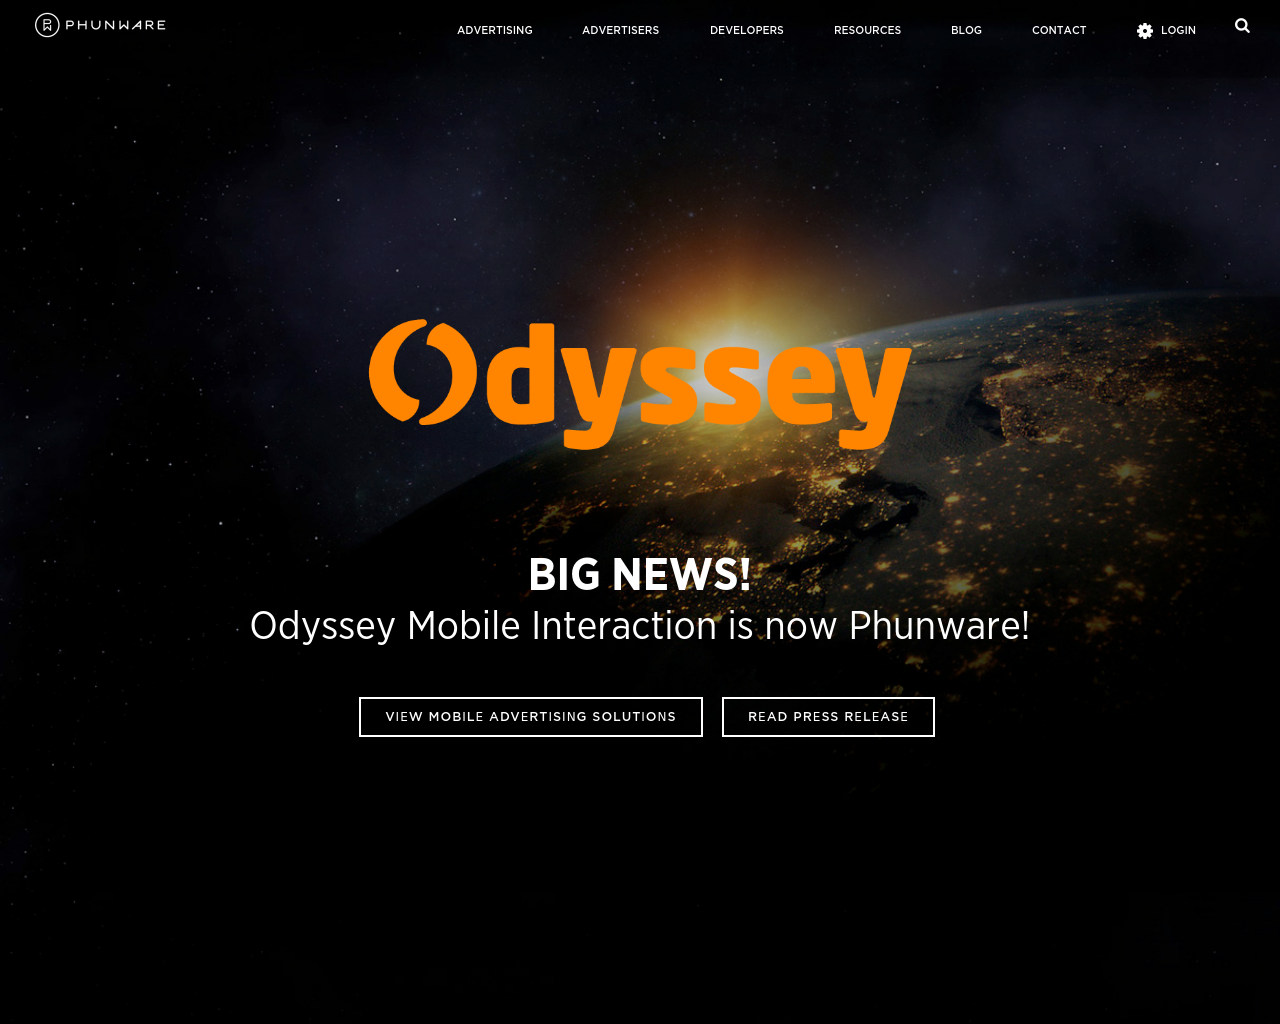 Odyssey-Mobile-Interaction-Advertising-Reviews-Pricing